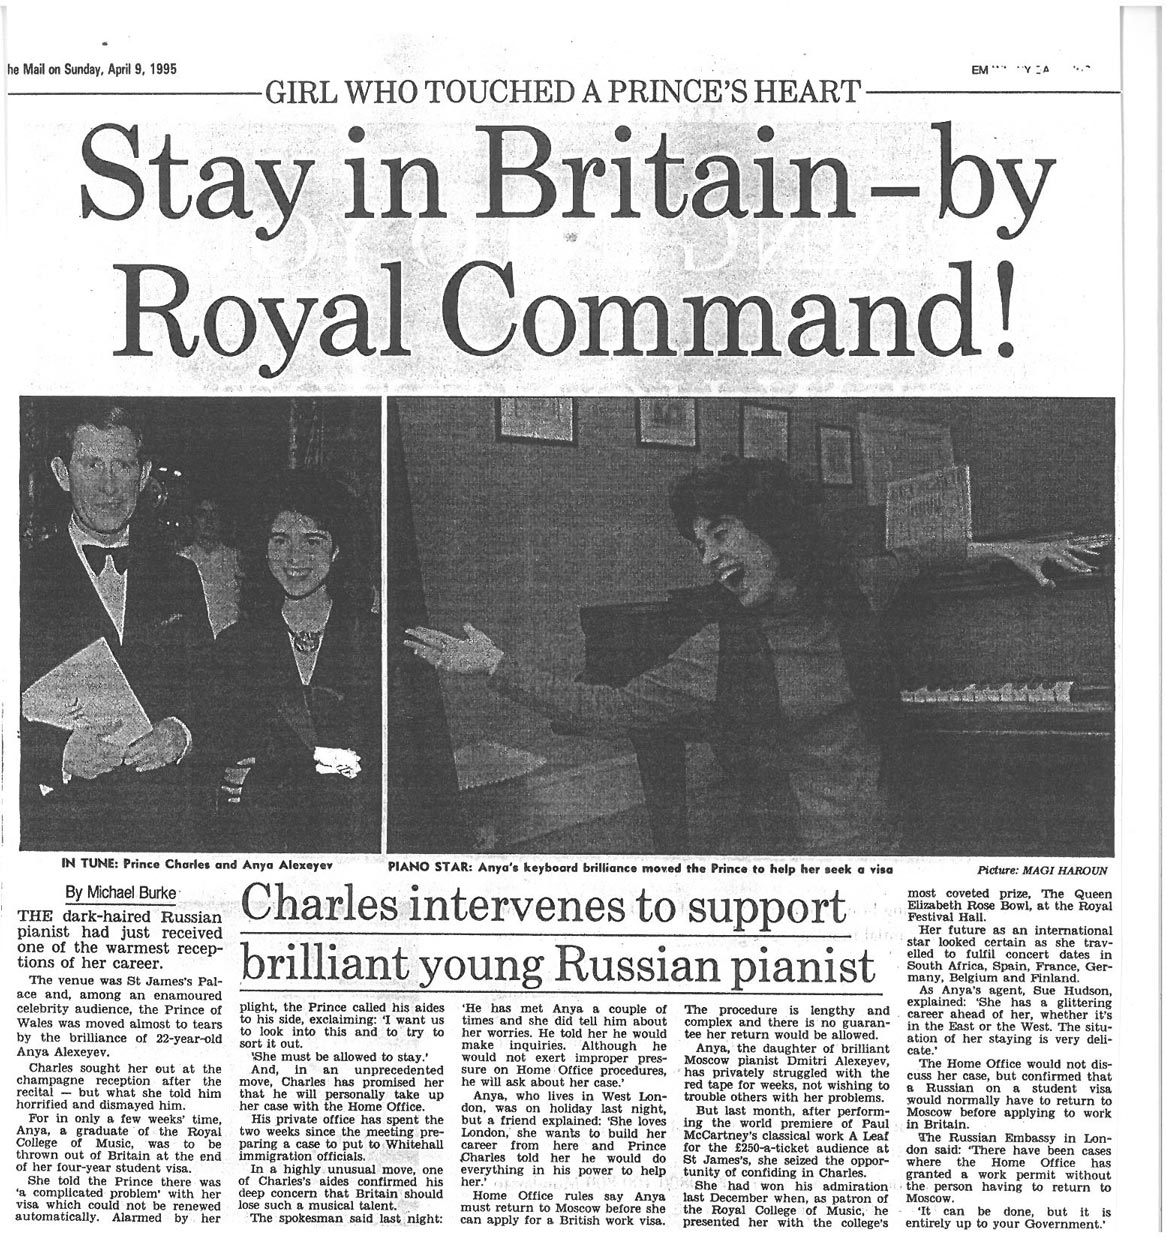 Article, 1995, The Mail on Sunday